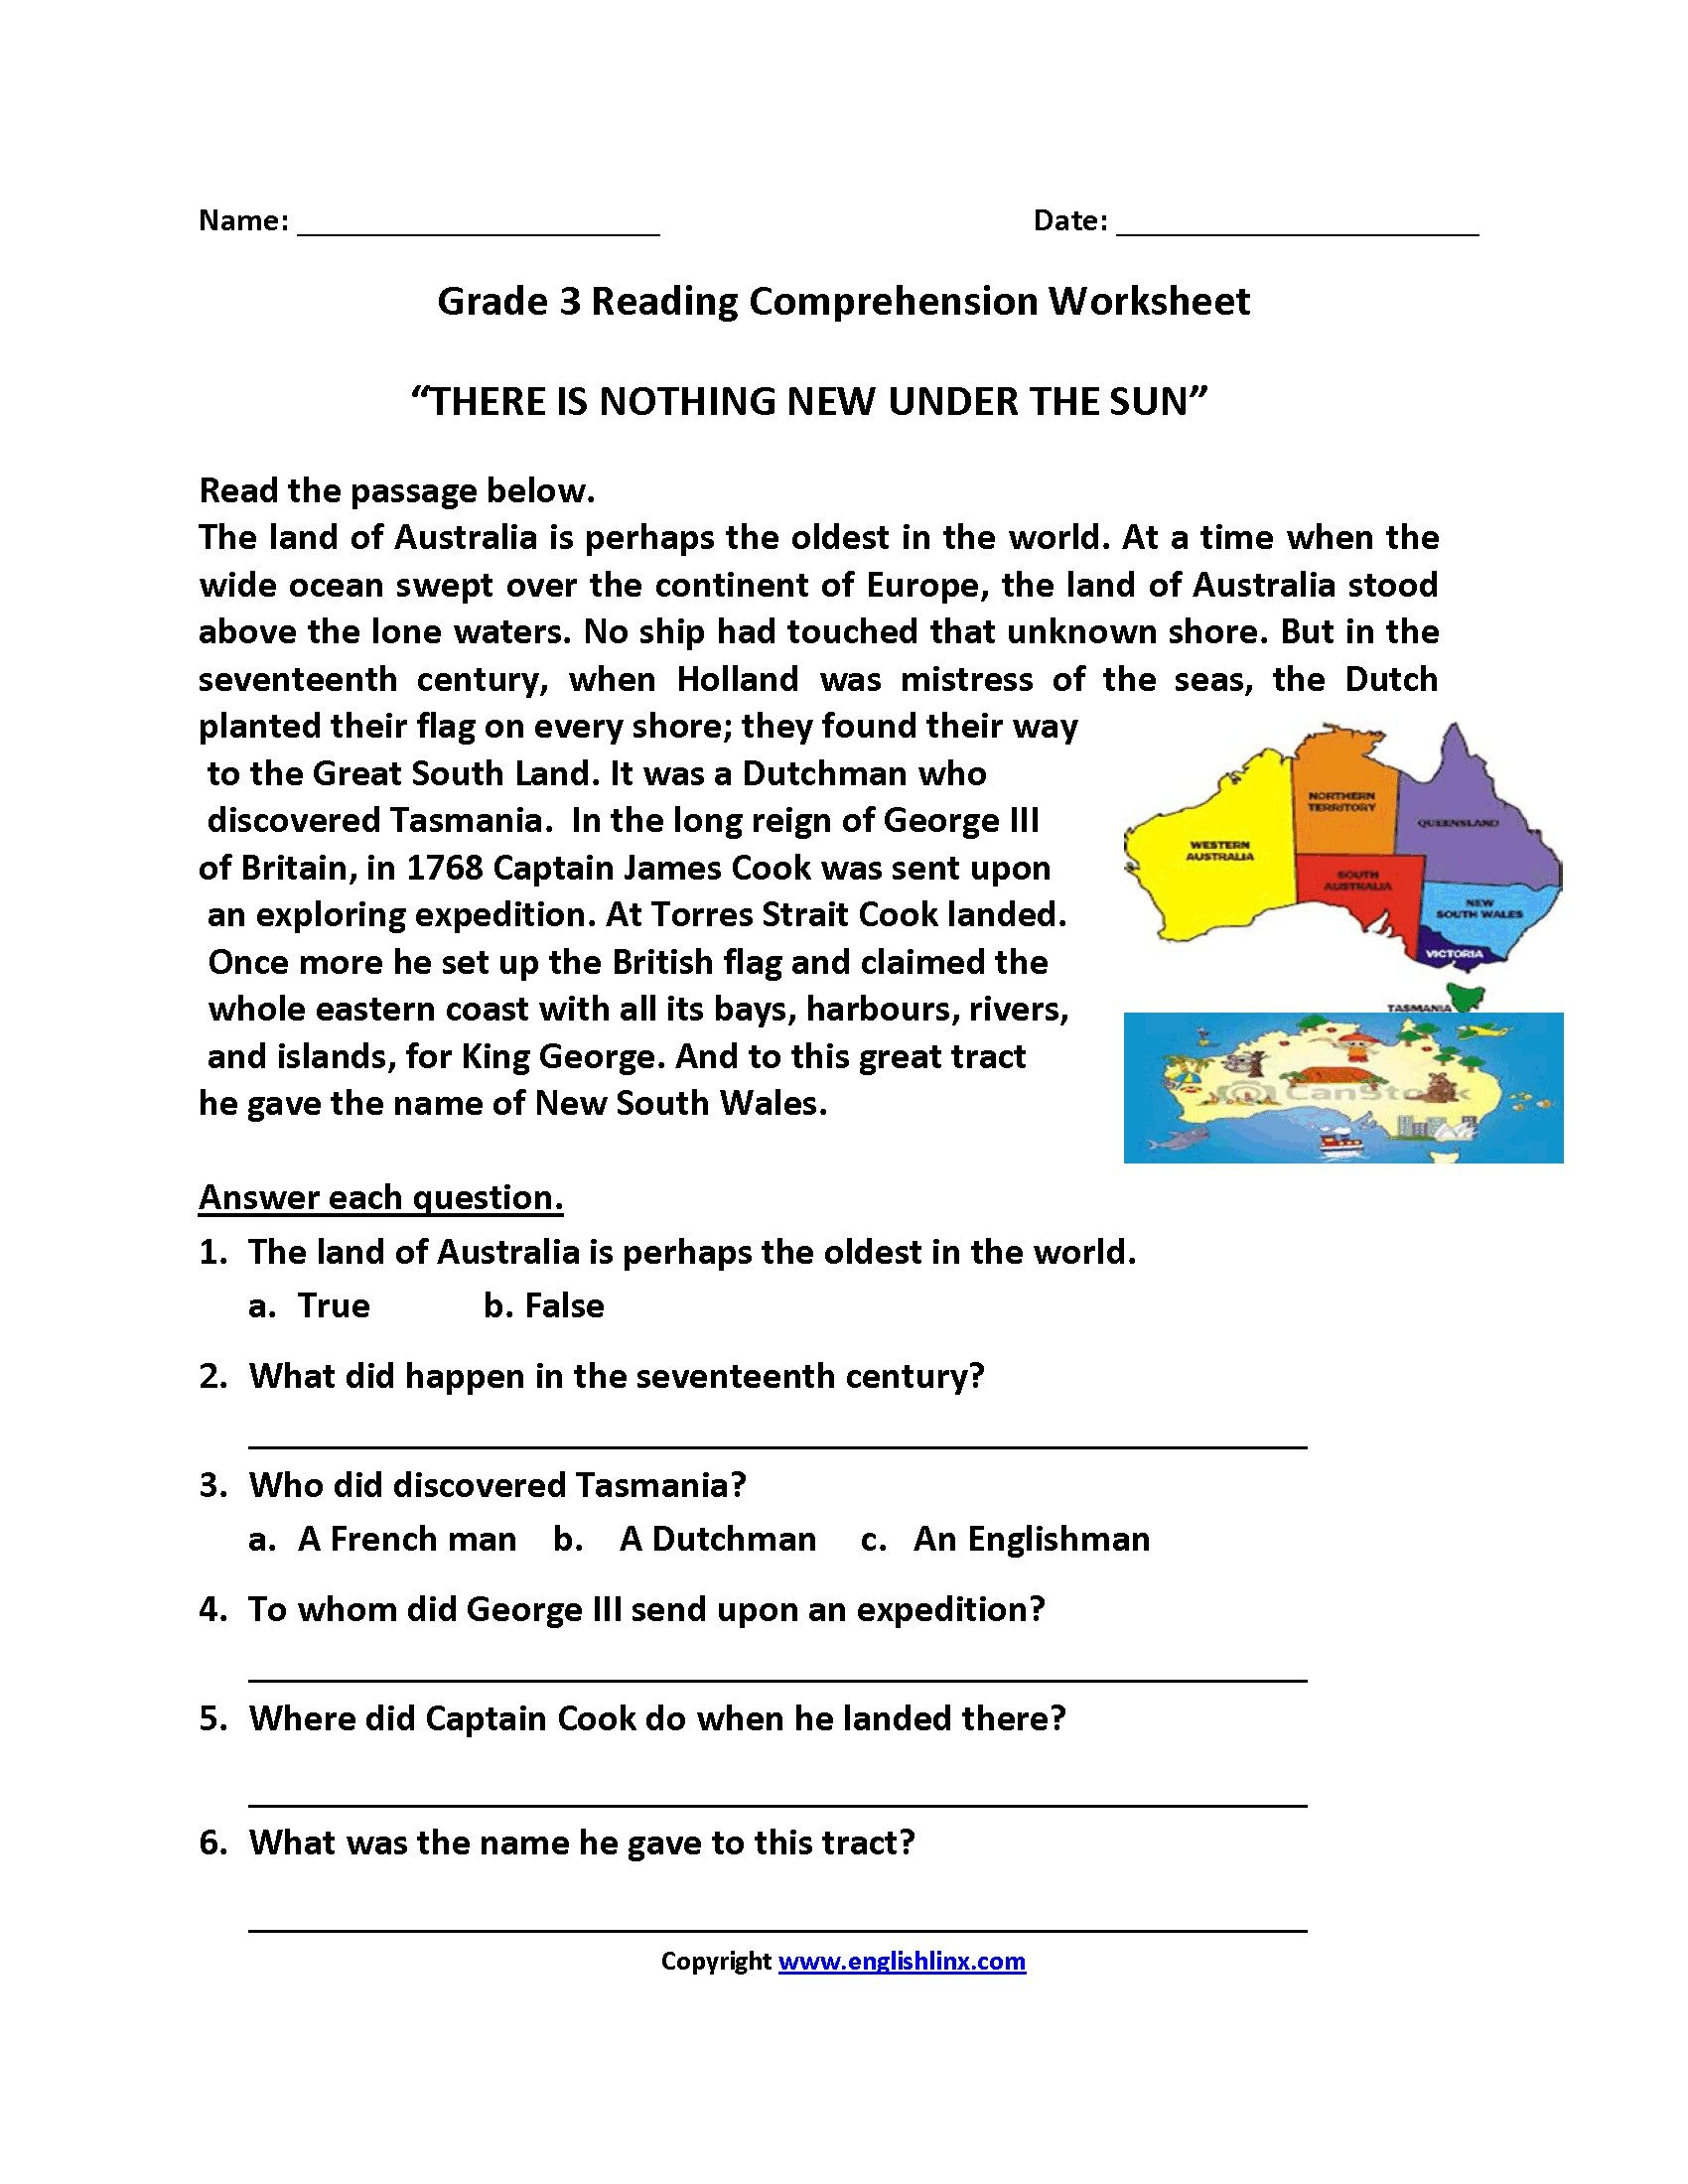 Reading Prehension Worksheet Fun